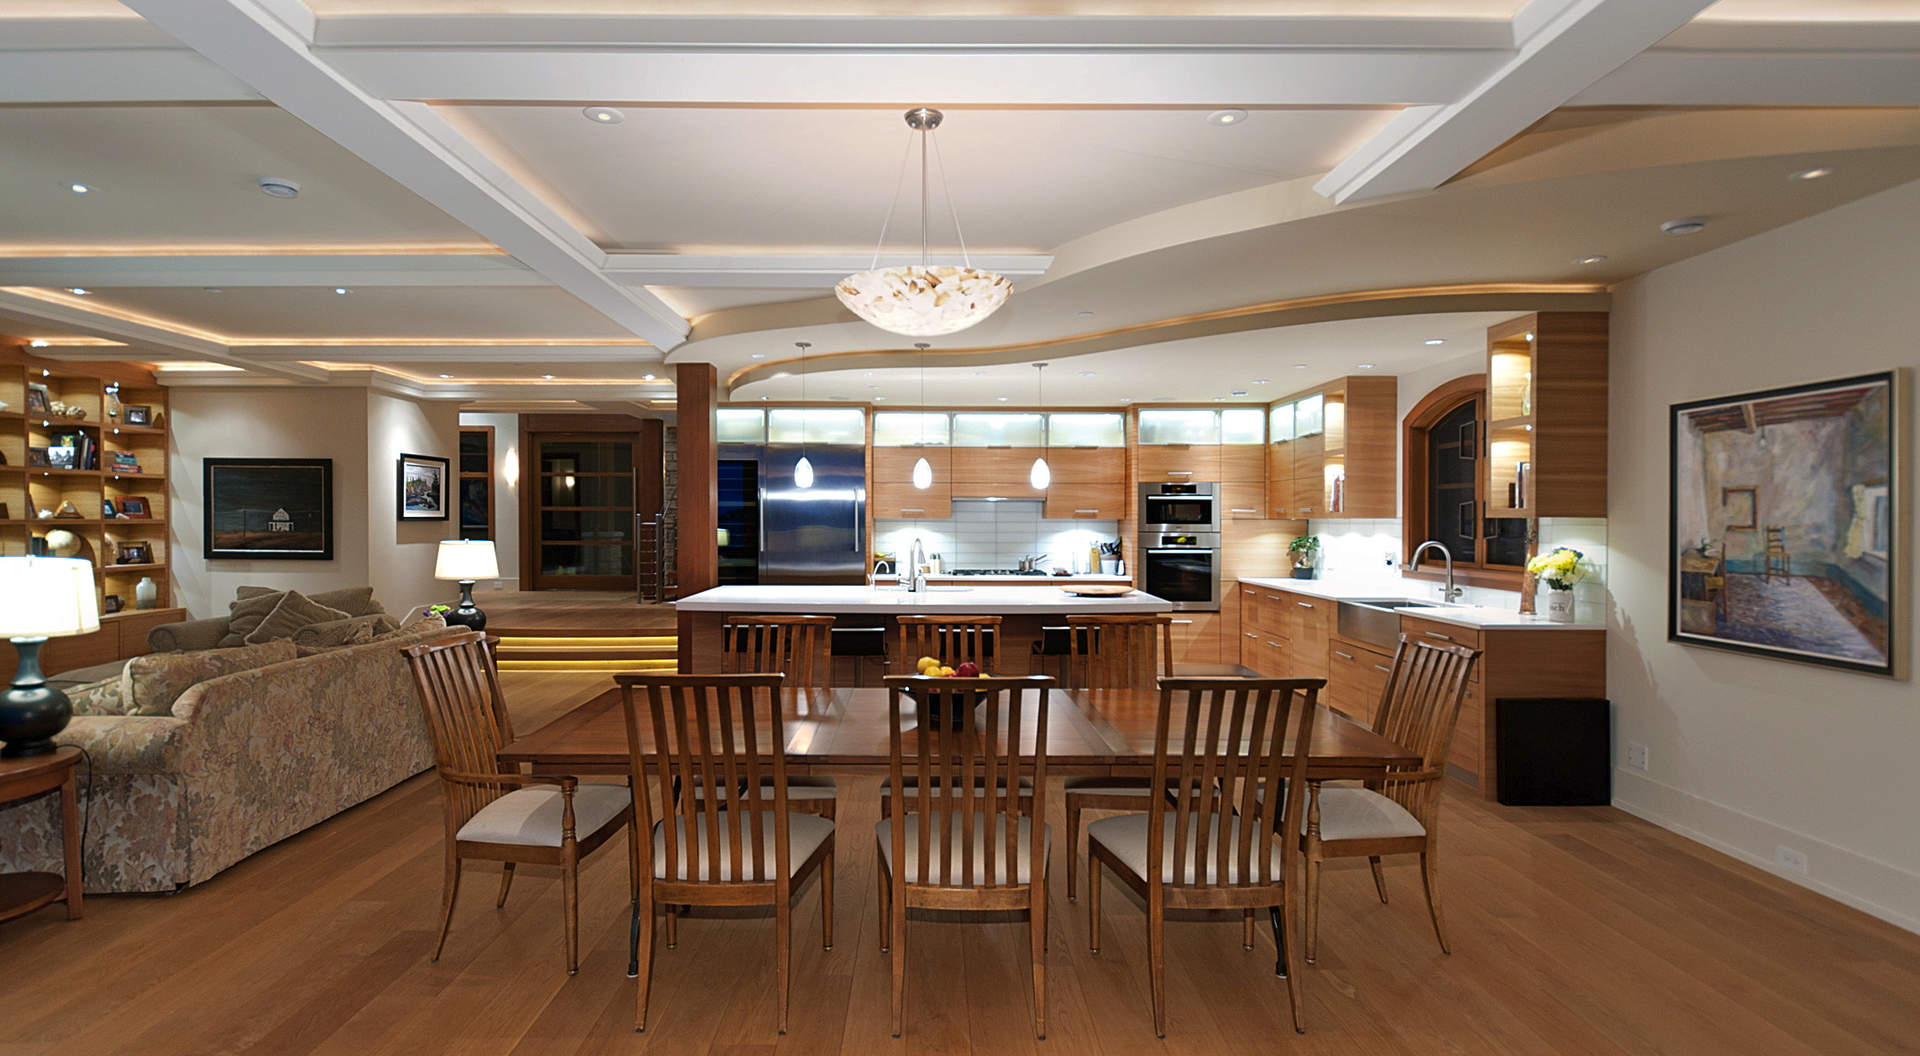 Breathtaking Kitchen & Dining